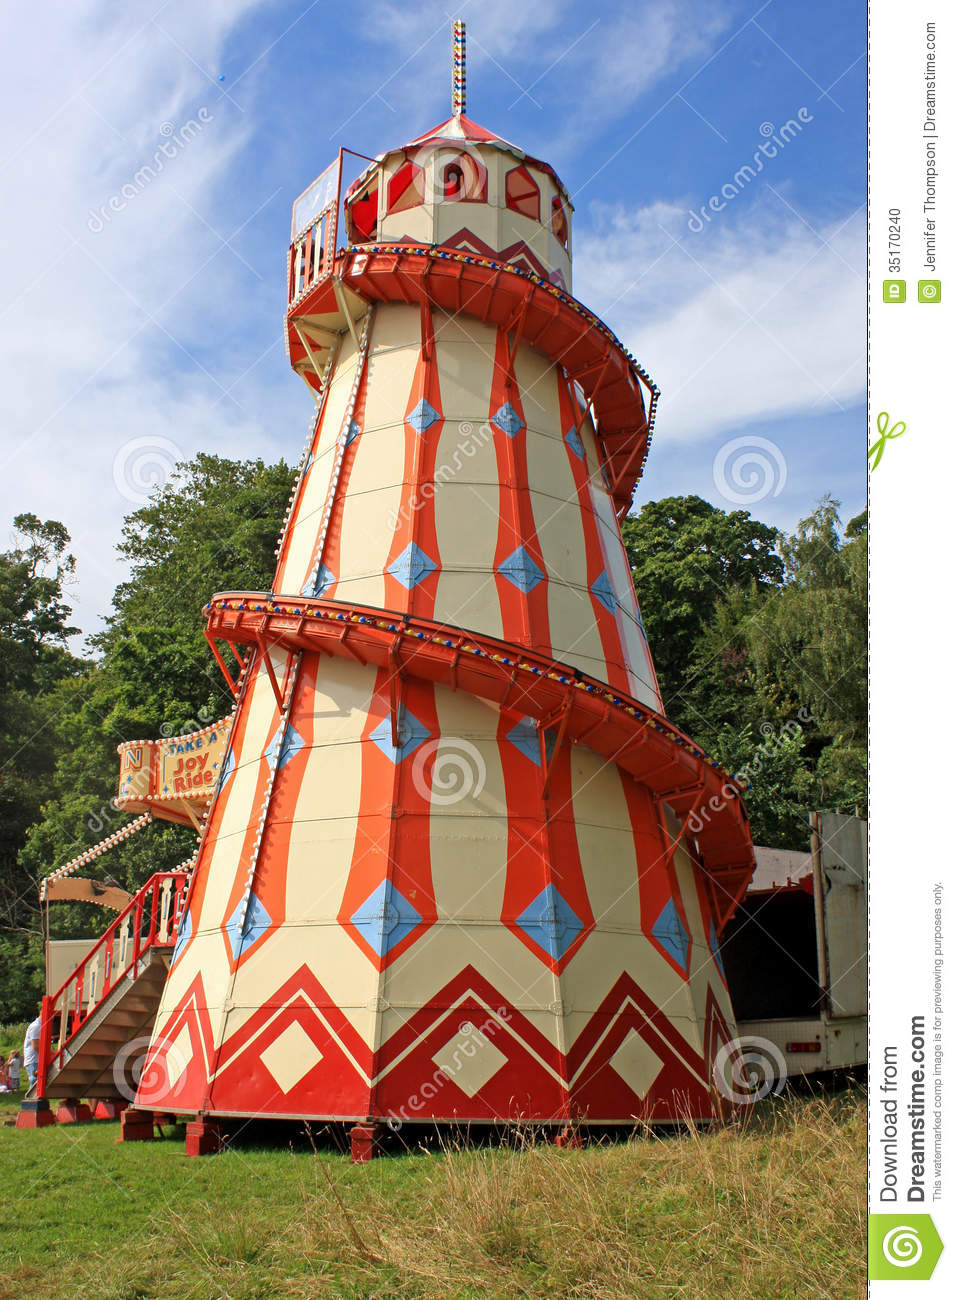 Helter Skelter Stock Photo - Image: 35170240